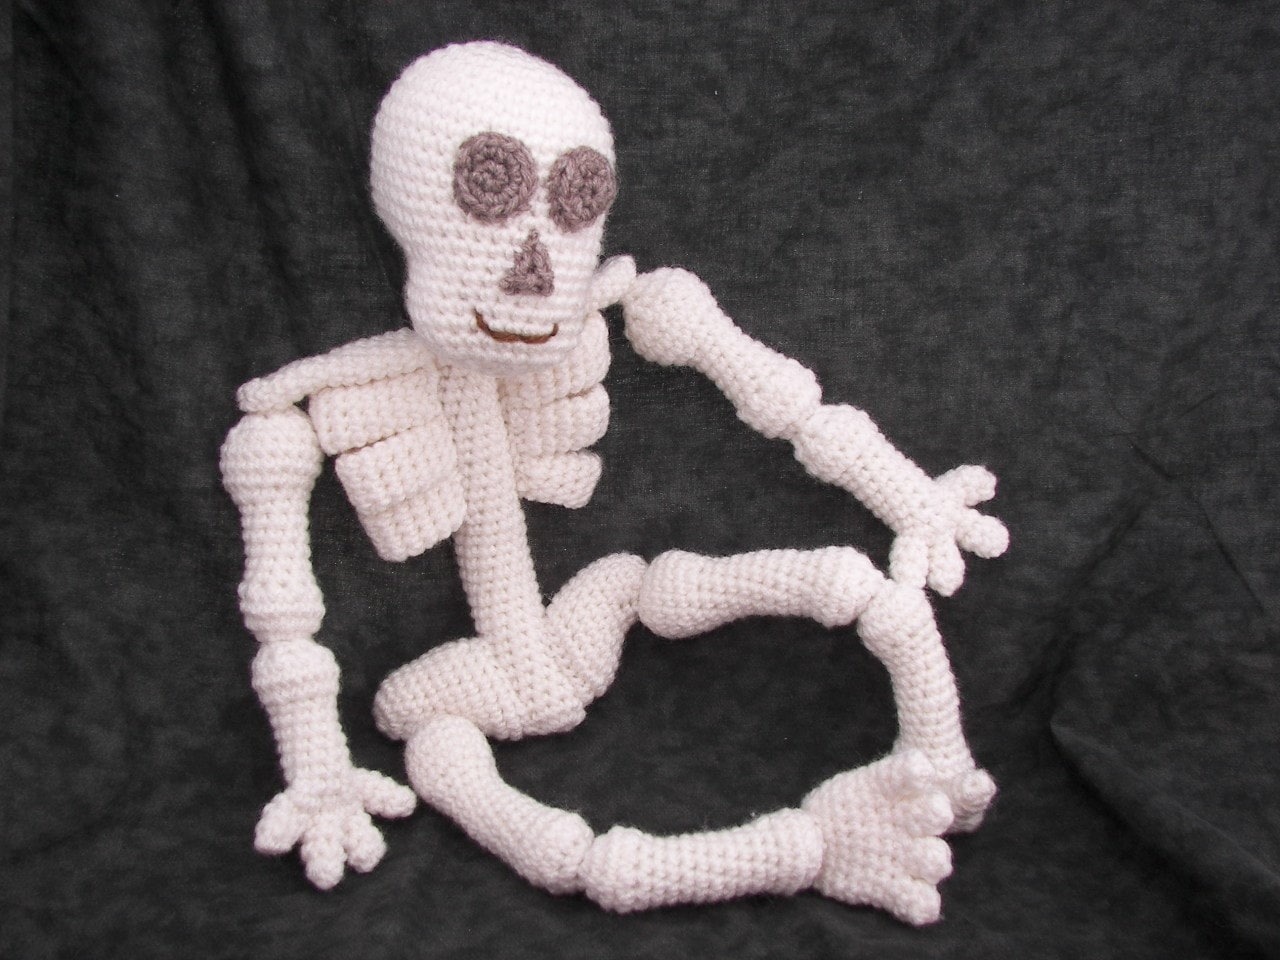 Amigurumi Wire Skeleton : Knobby Knees Skeleton Crochet Pattern